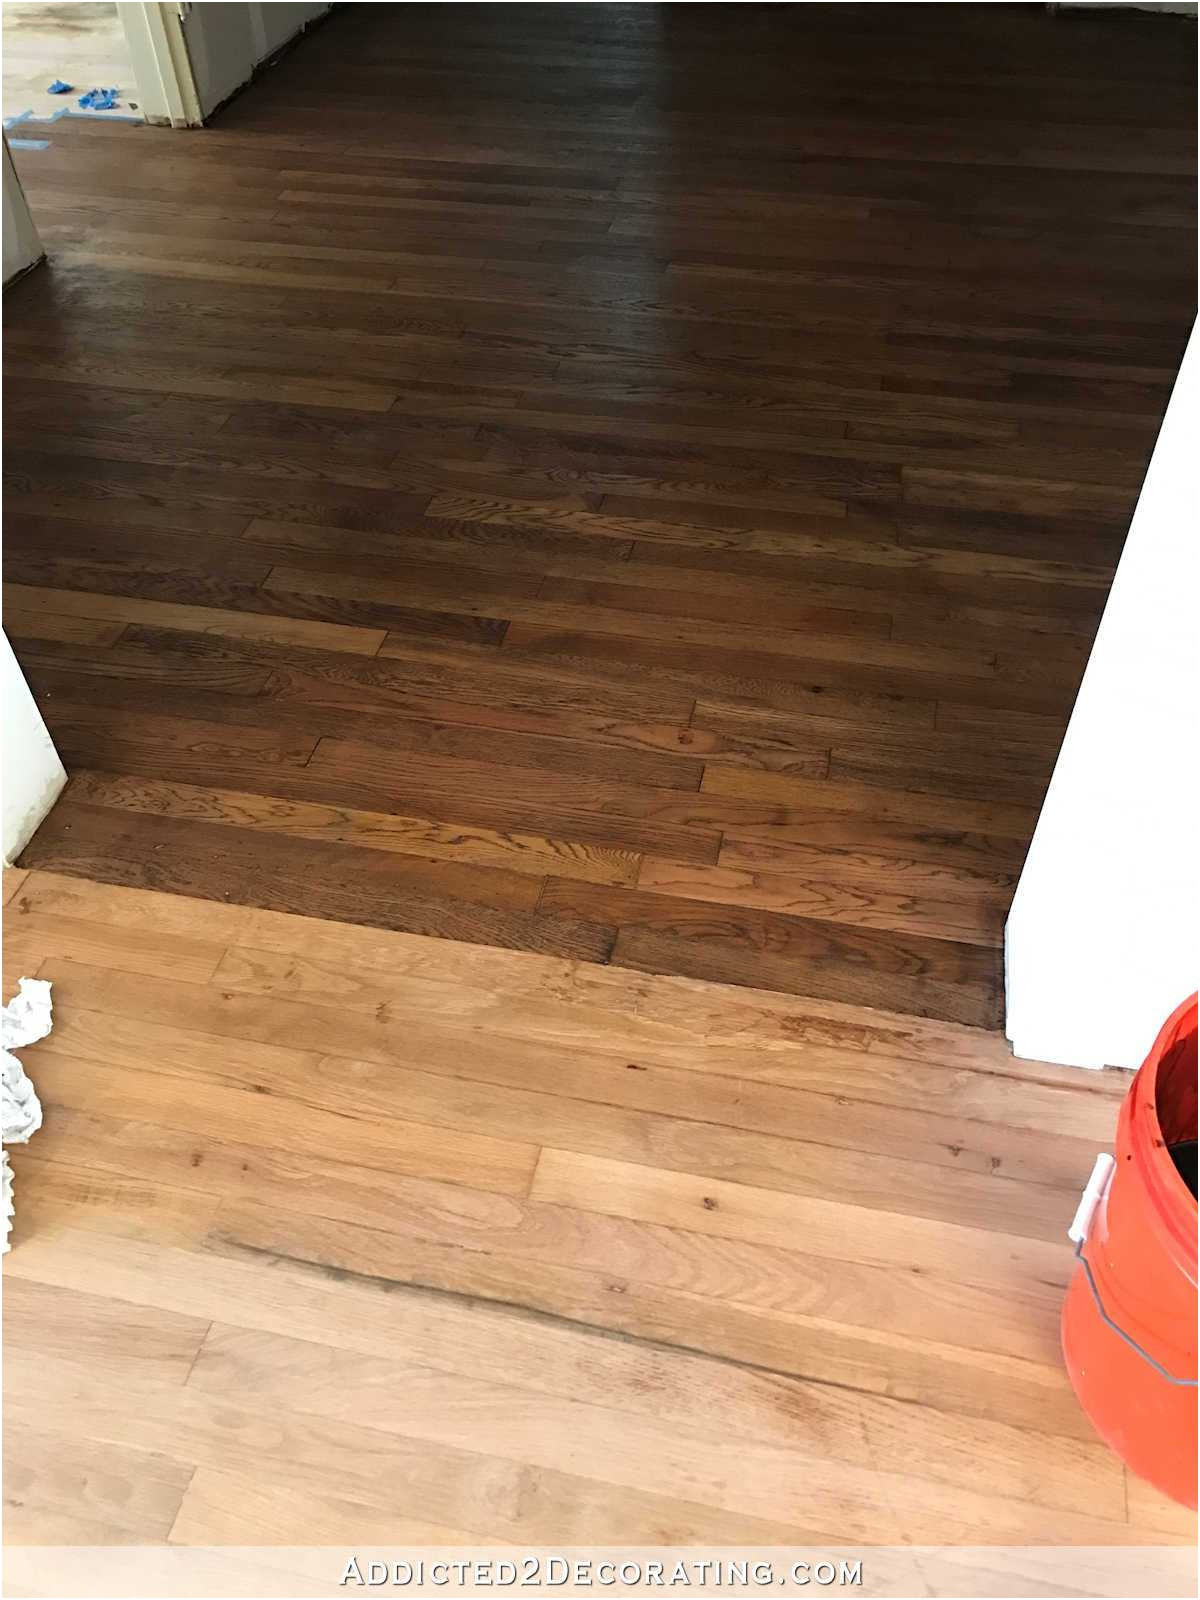 hardwood flooring prices per square foot home depot of home depot red oak hardwood flooring best minwax special walnut over regarding home depot red oak hardwood flooring best minwax special walnut over red oak hardwood floors topped